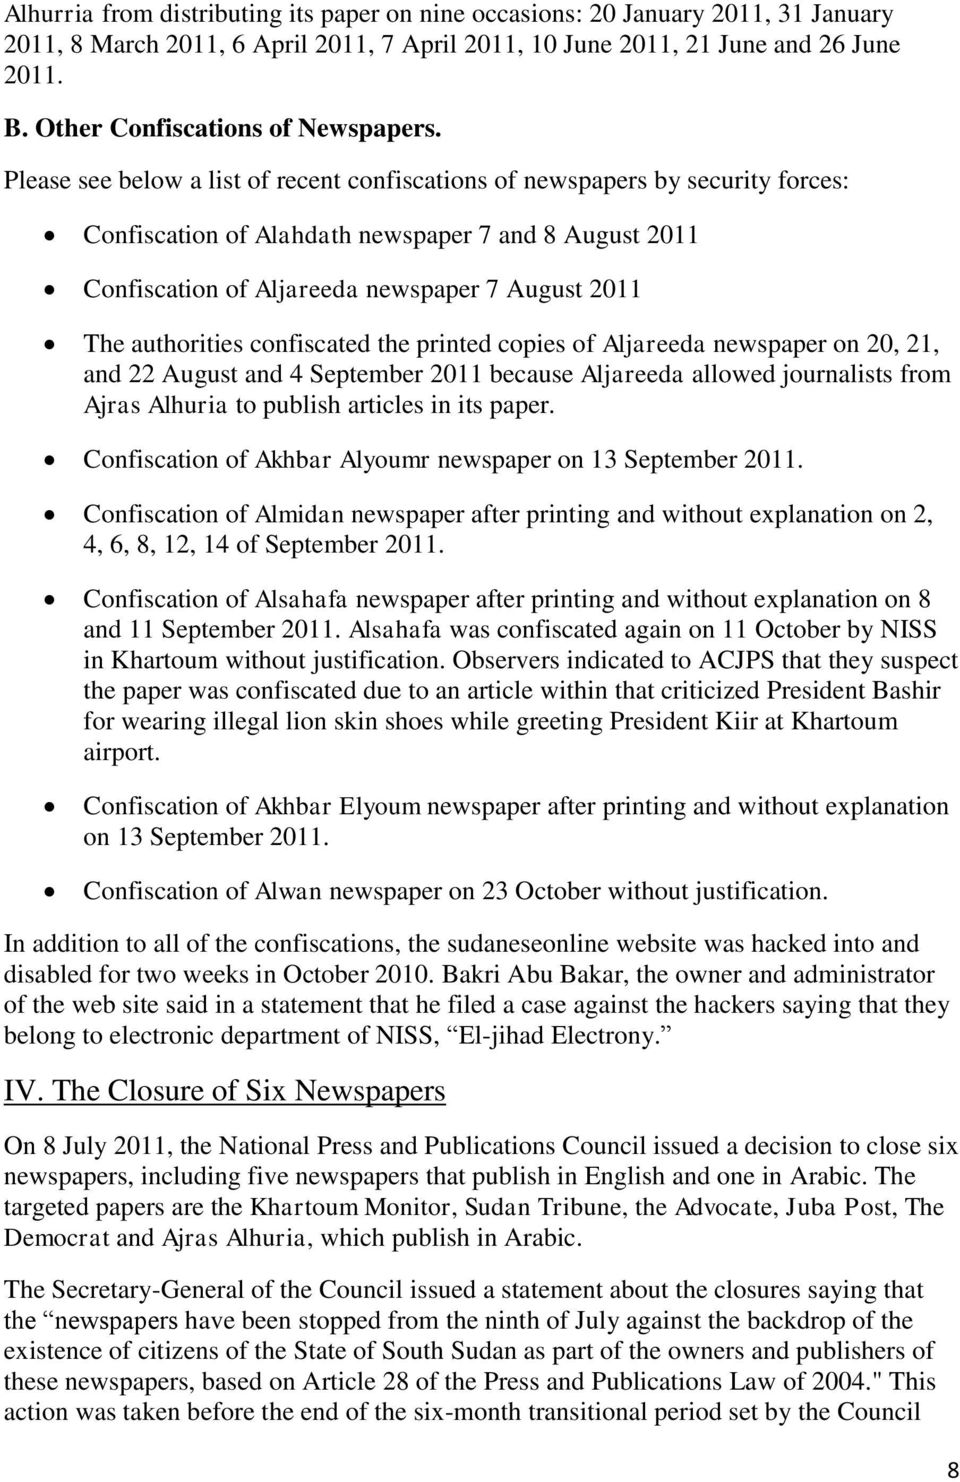 Please see below a list of recent confiscations of newspapers by security forces: Confiscation of Alahdath newspaper 7 and 8 August 2011 Confiscation of Aljareeda newspaper 7 August 2011 The